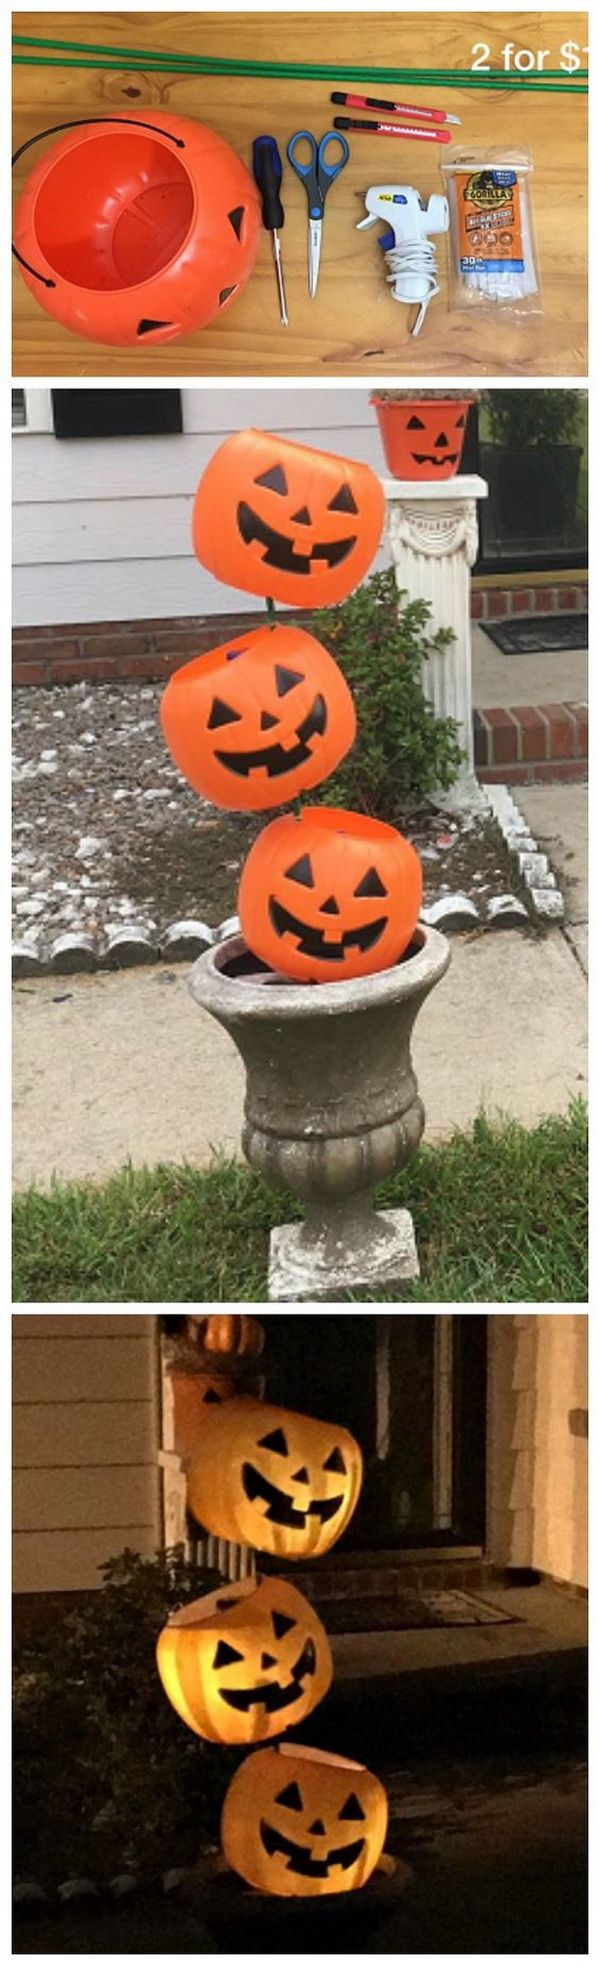 30+ Homemade Halloween Decoration Ideas Plastic pumpkins, Diy - Halloween Yard Decorations Ideas